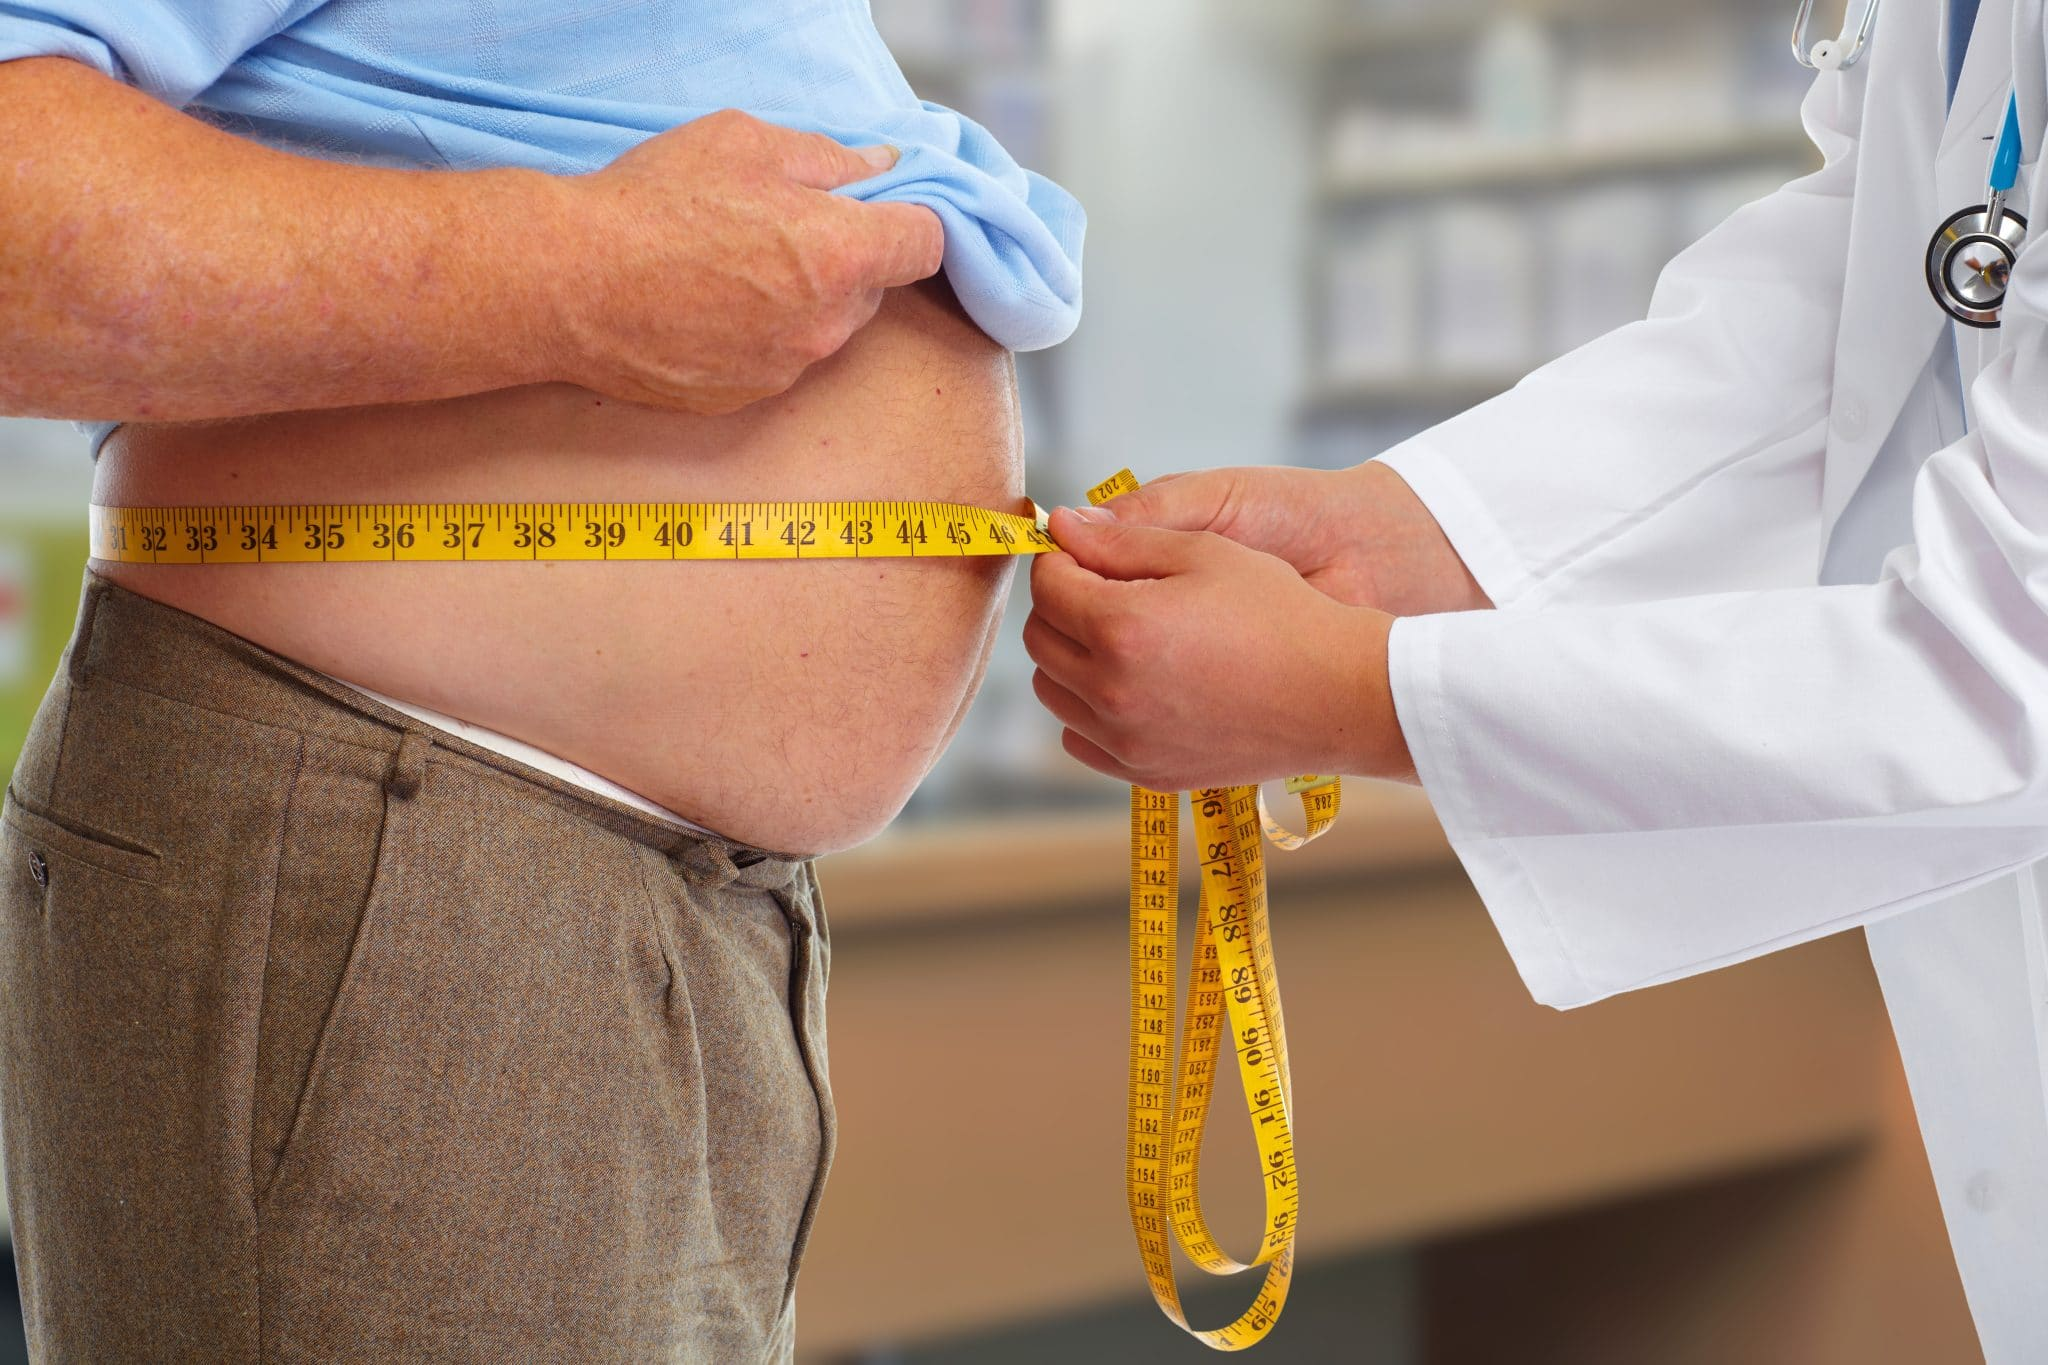 Doctor measuring obese man's stomach as part of medically supervised weight loss